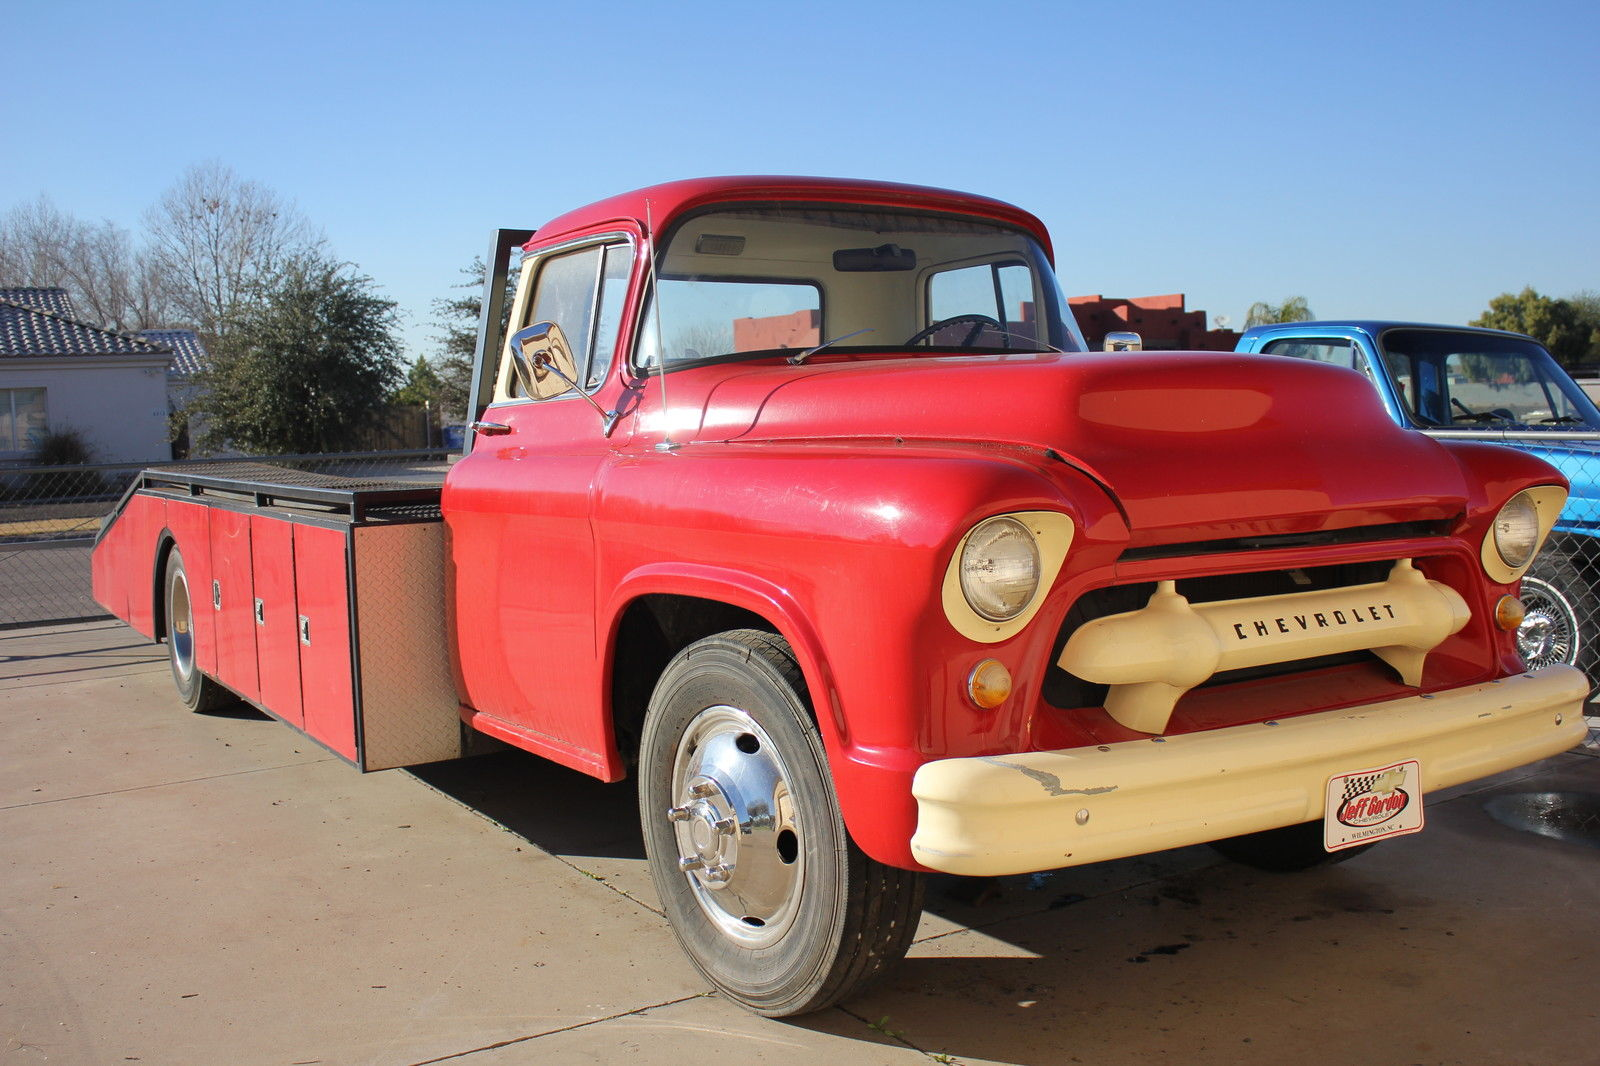 1955 Chevrolet Truck Ramp Car Hauler For Sale In Laveen Ford F100 On 20 Inch Wheels Other